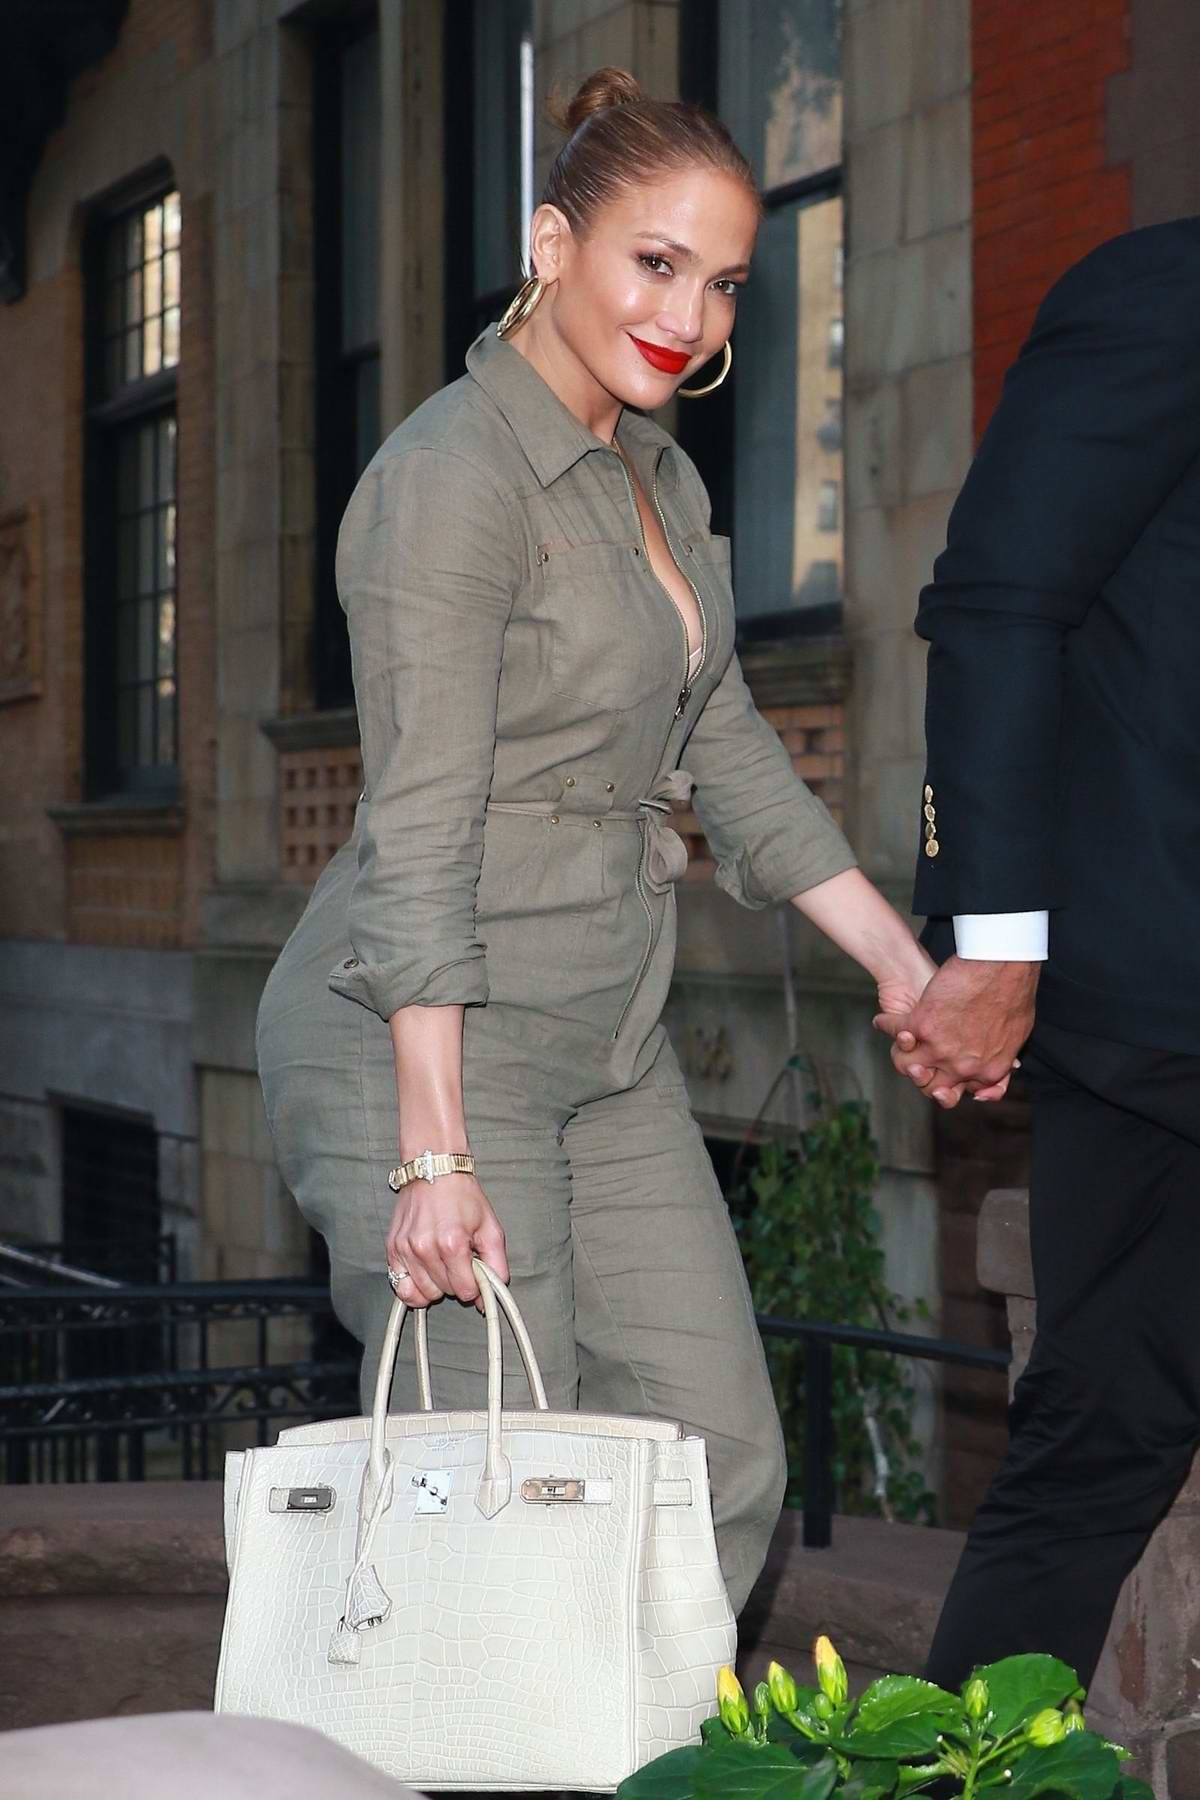 Jennifer Lopez and Alex Rodriguez are all smiles as they arrive for private dinner in New York City